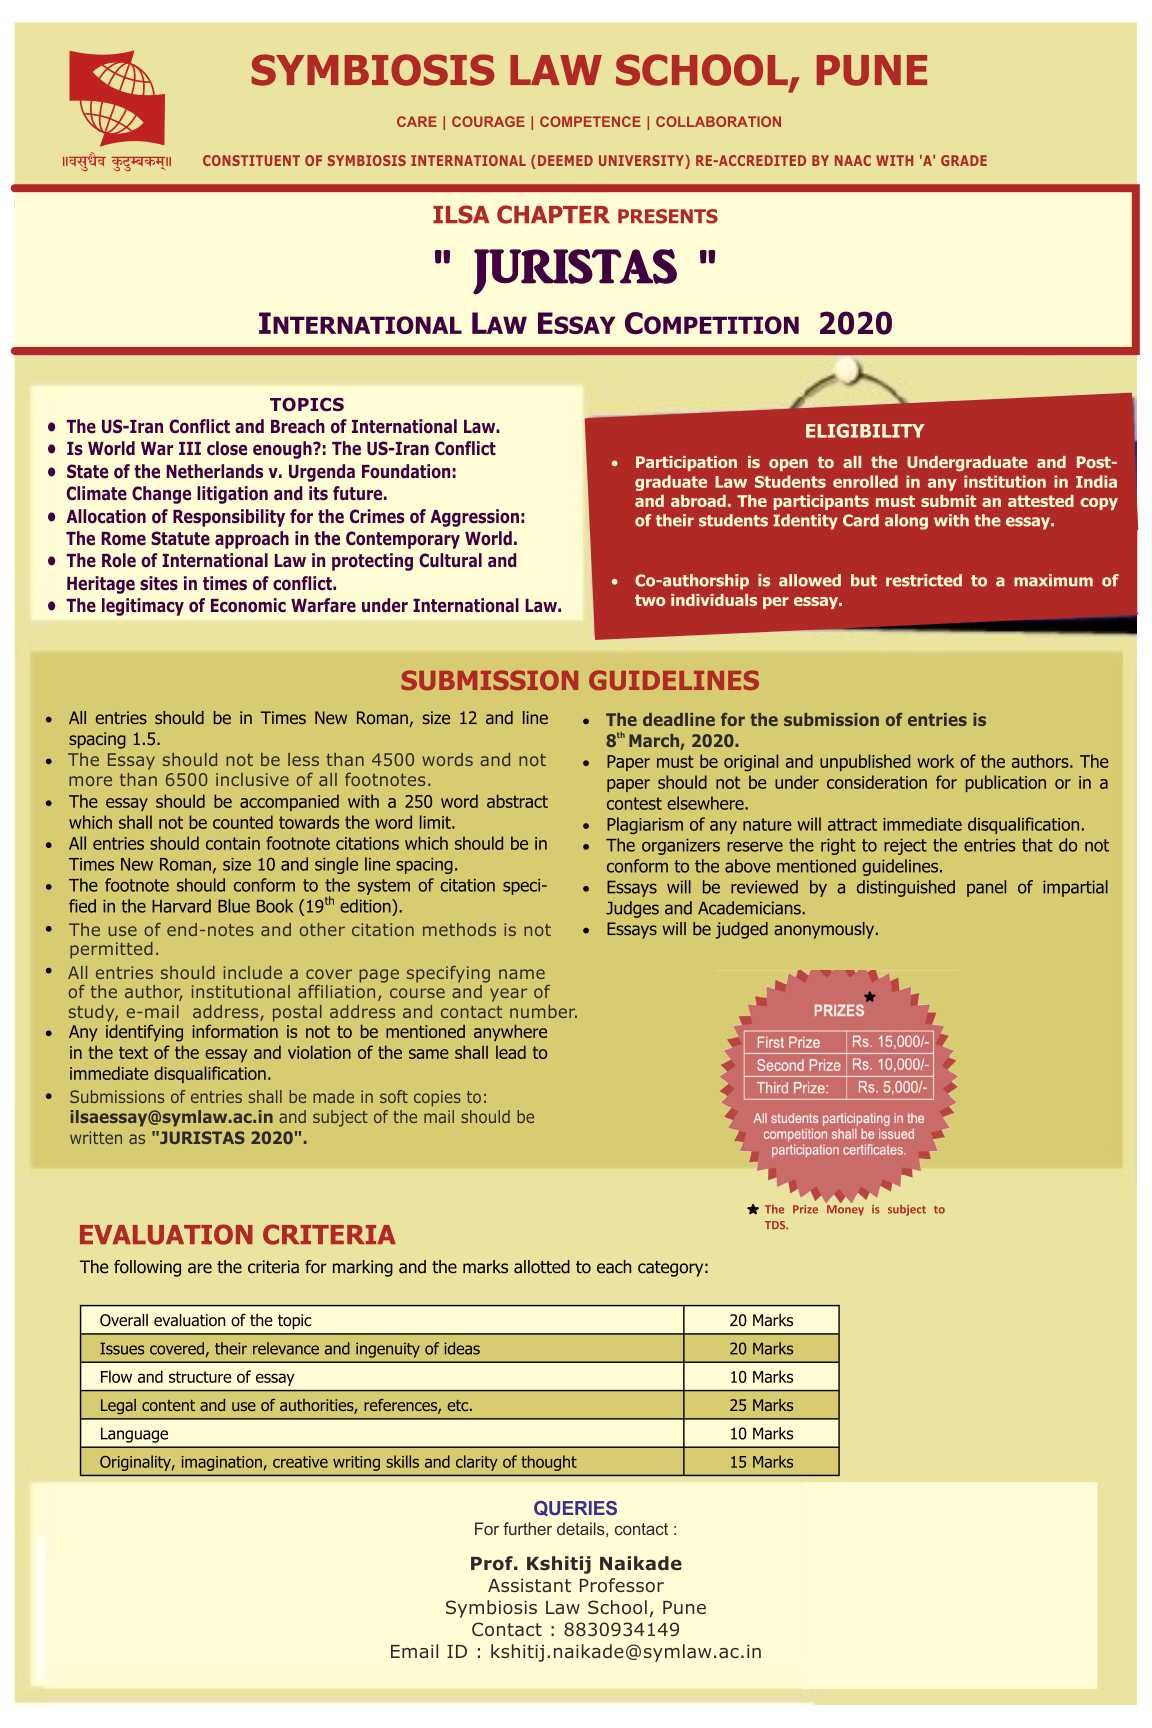 Juristas International Law Essay Competition by Symbiosis Law School, Pune